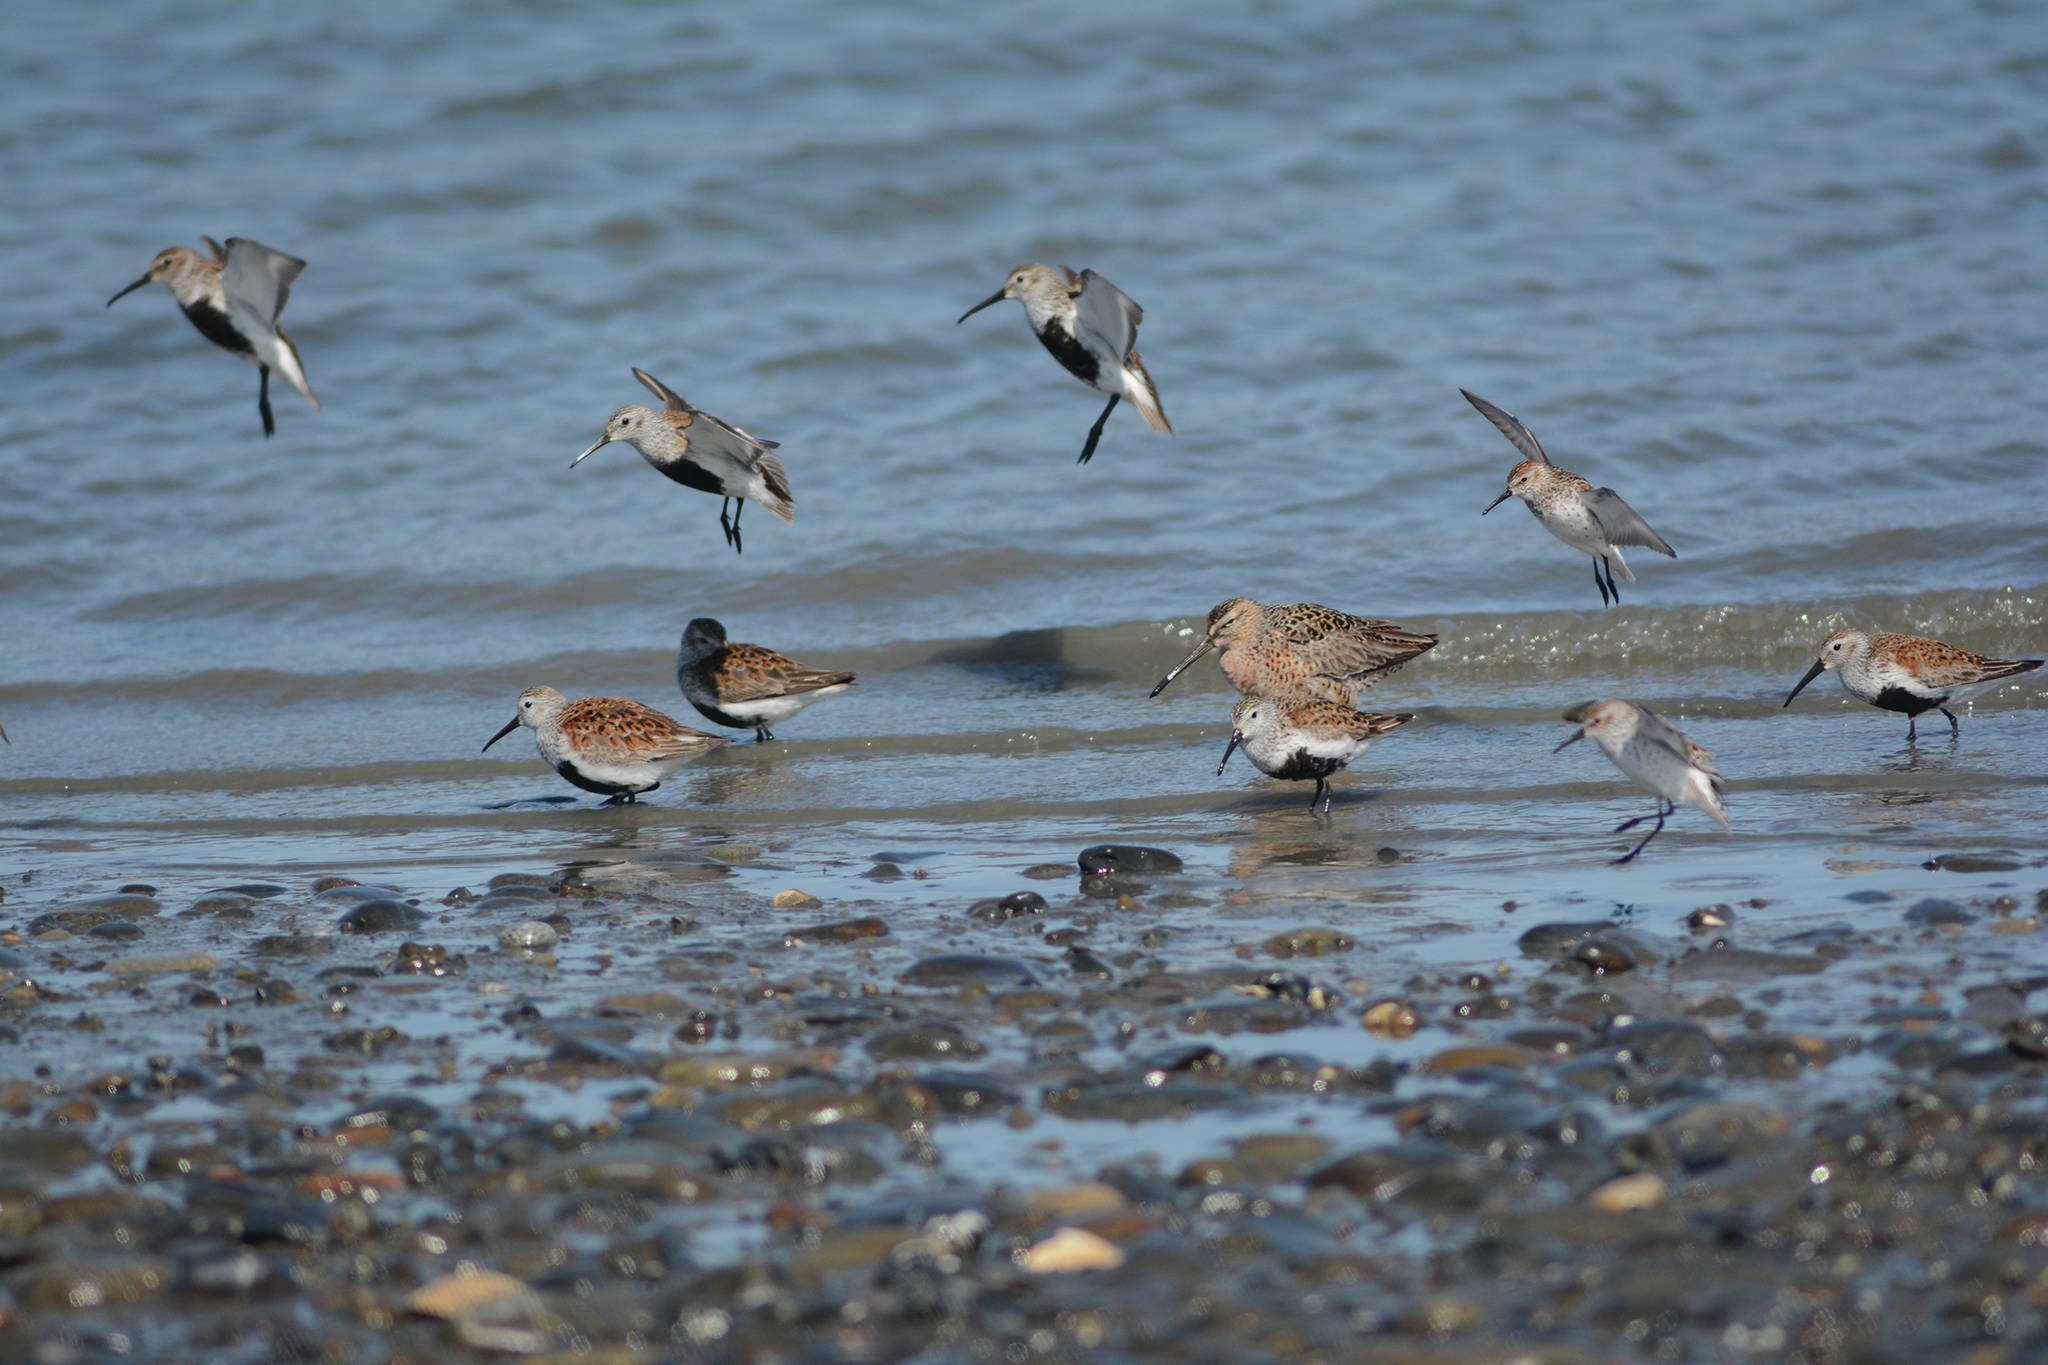 Dunlins, western sandpipers and a dowitcher feed on Saturday, May 2, 2020, on the Homer Spit near Green Timbers in Homer, Alaska. (Photo by Michael Armstrong/Homer News)